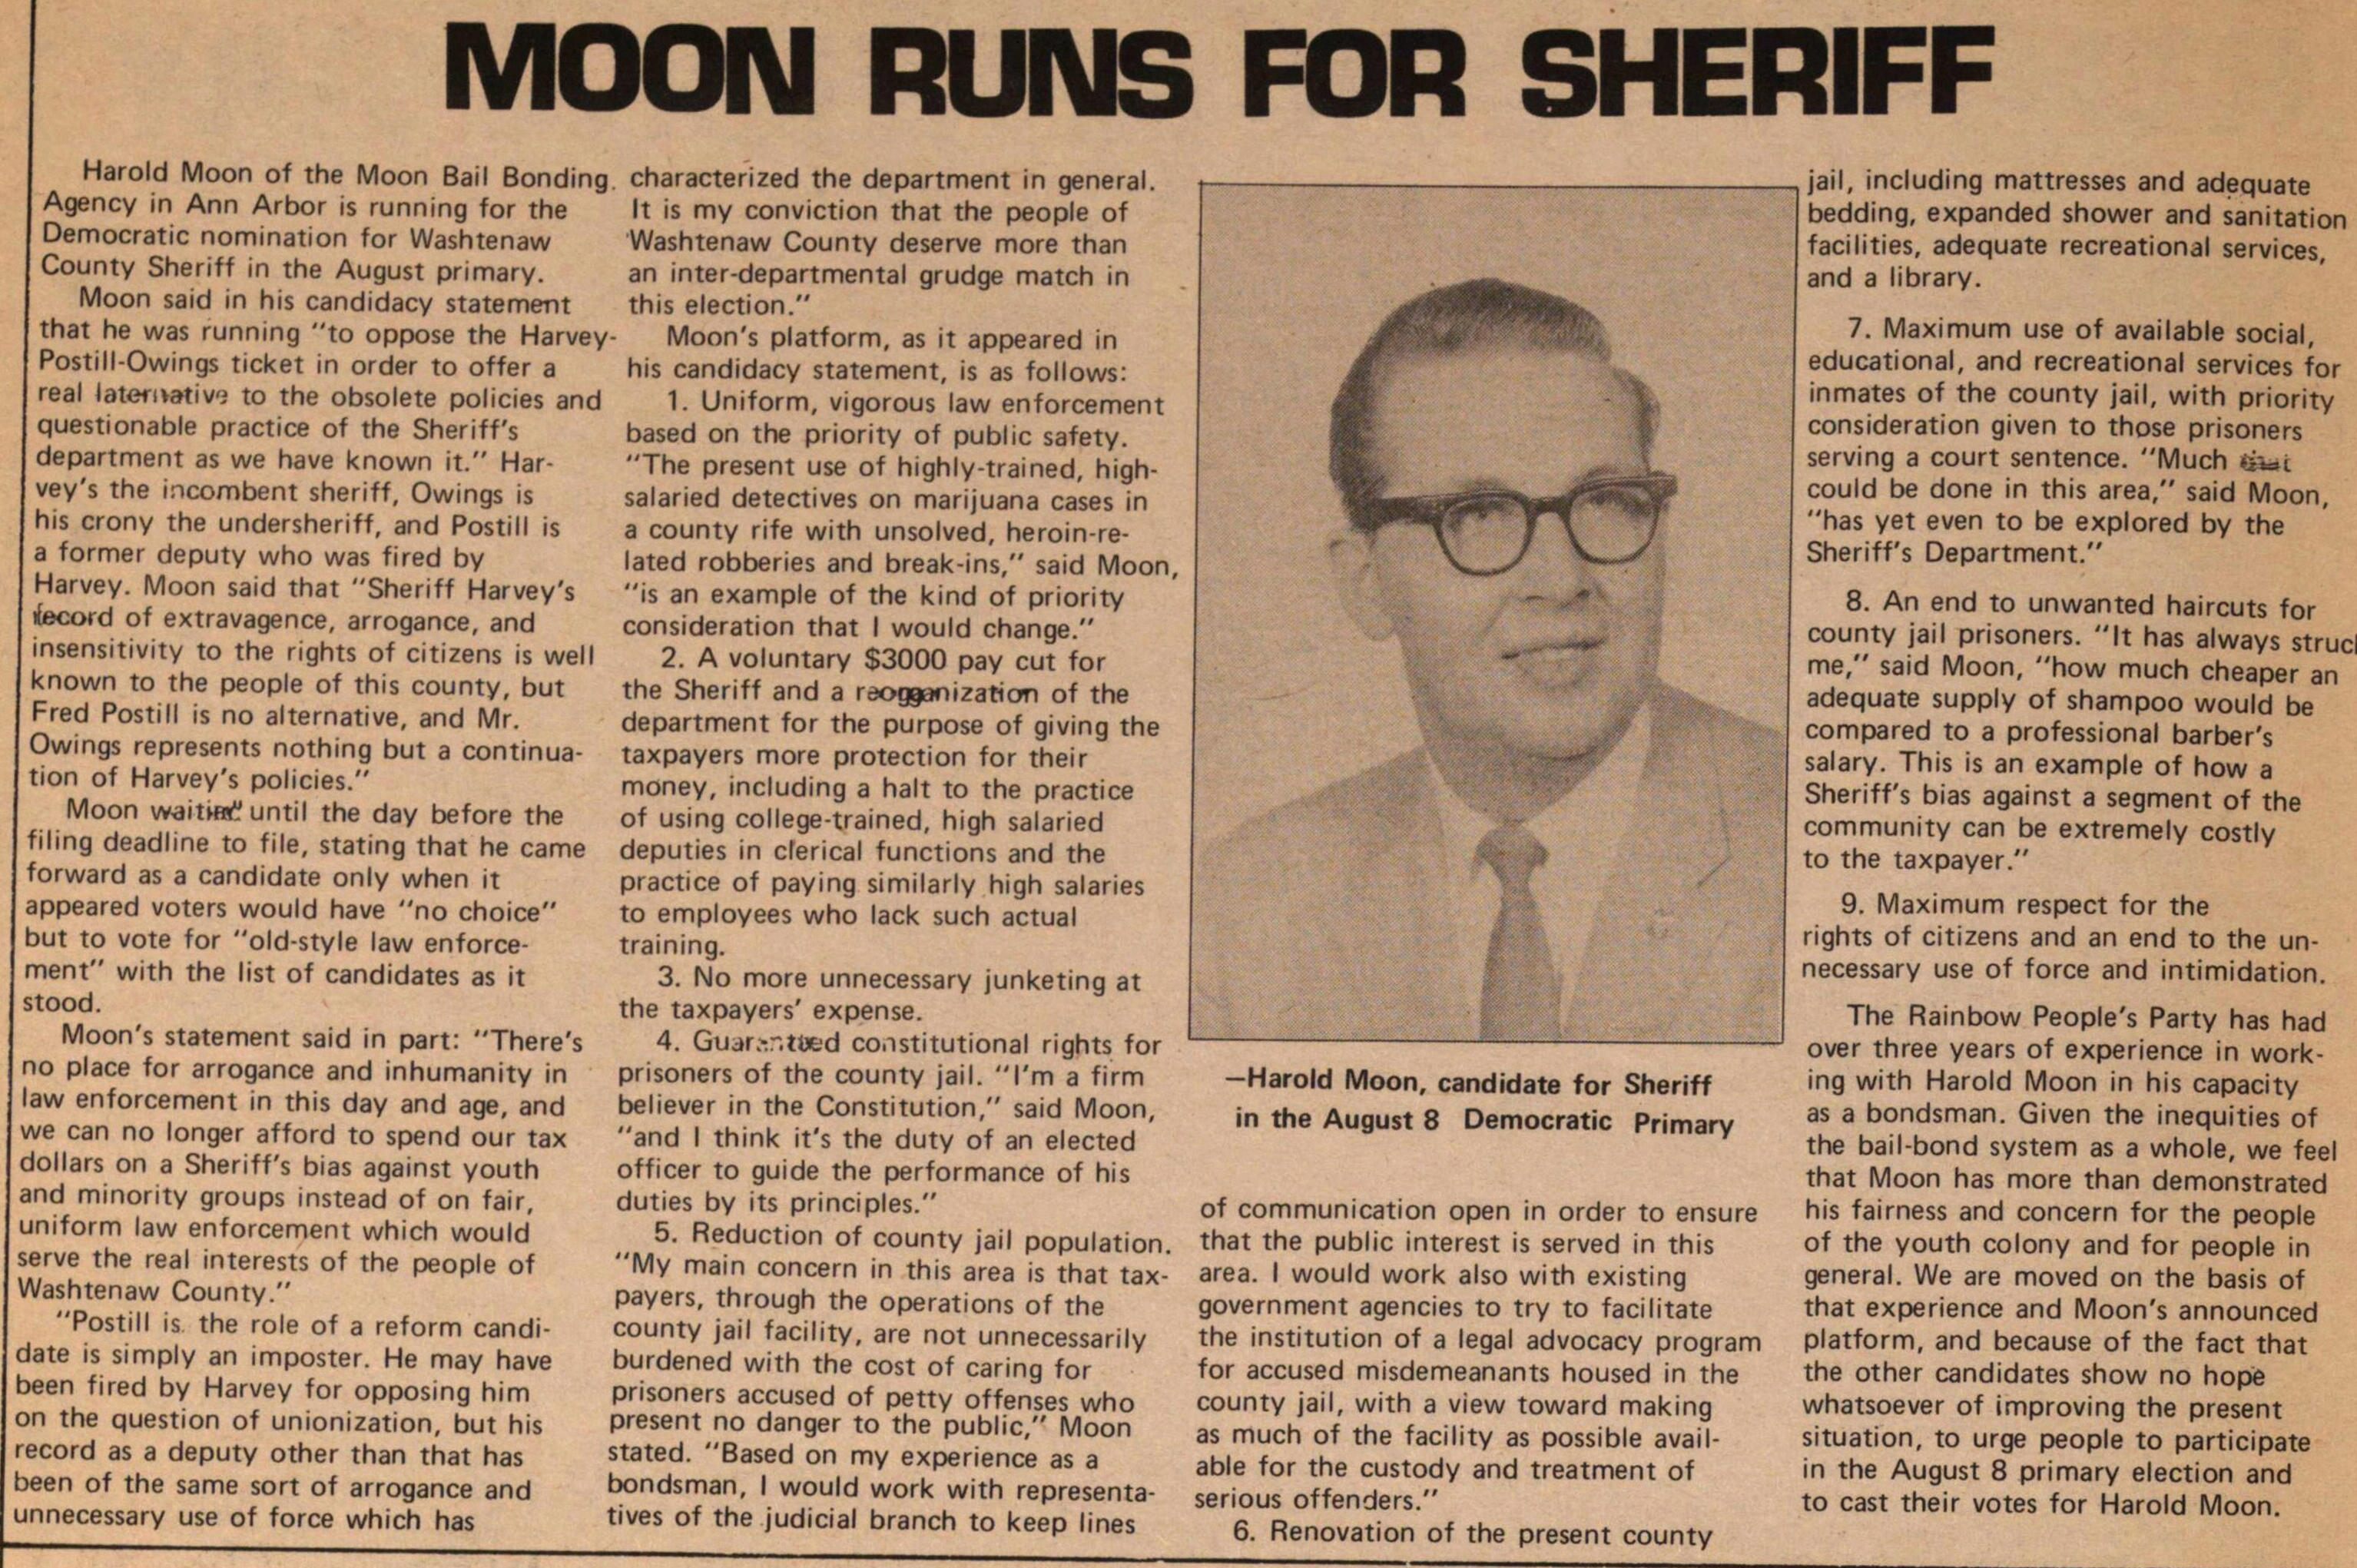 Moon Runs For Sheriff image